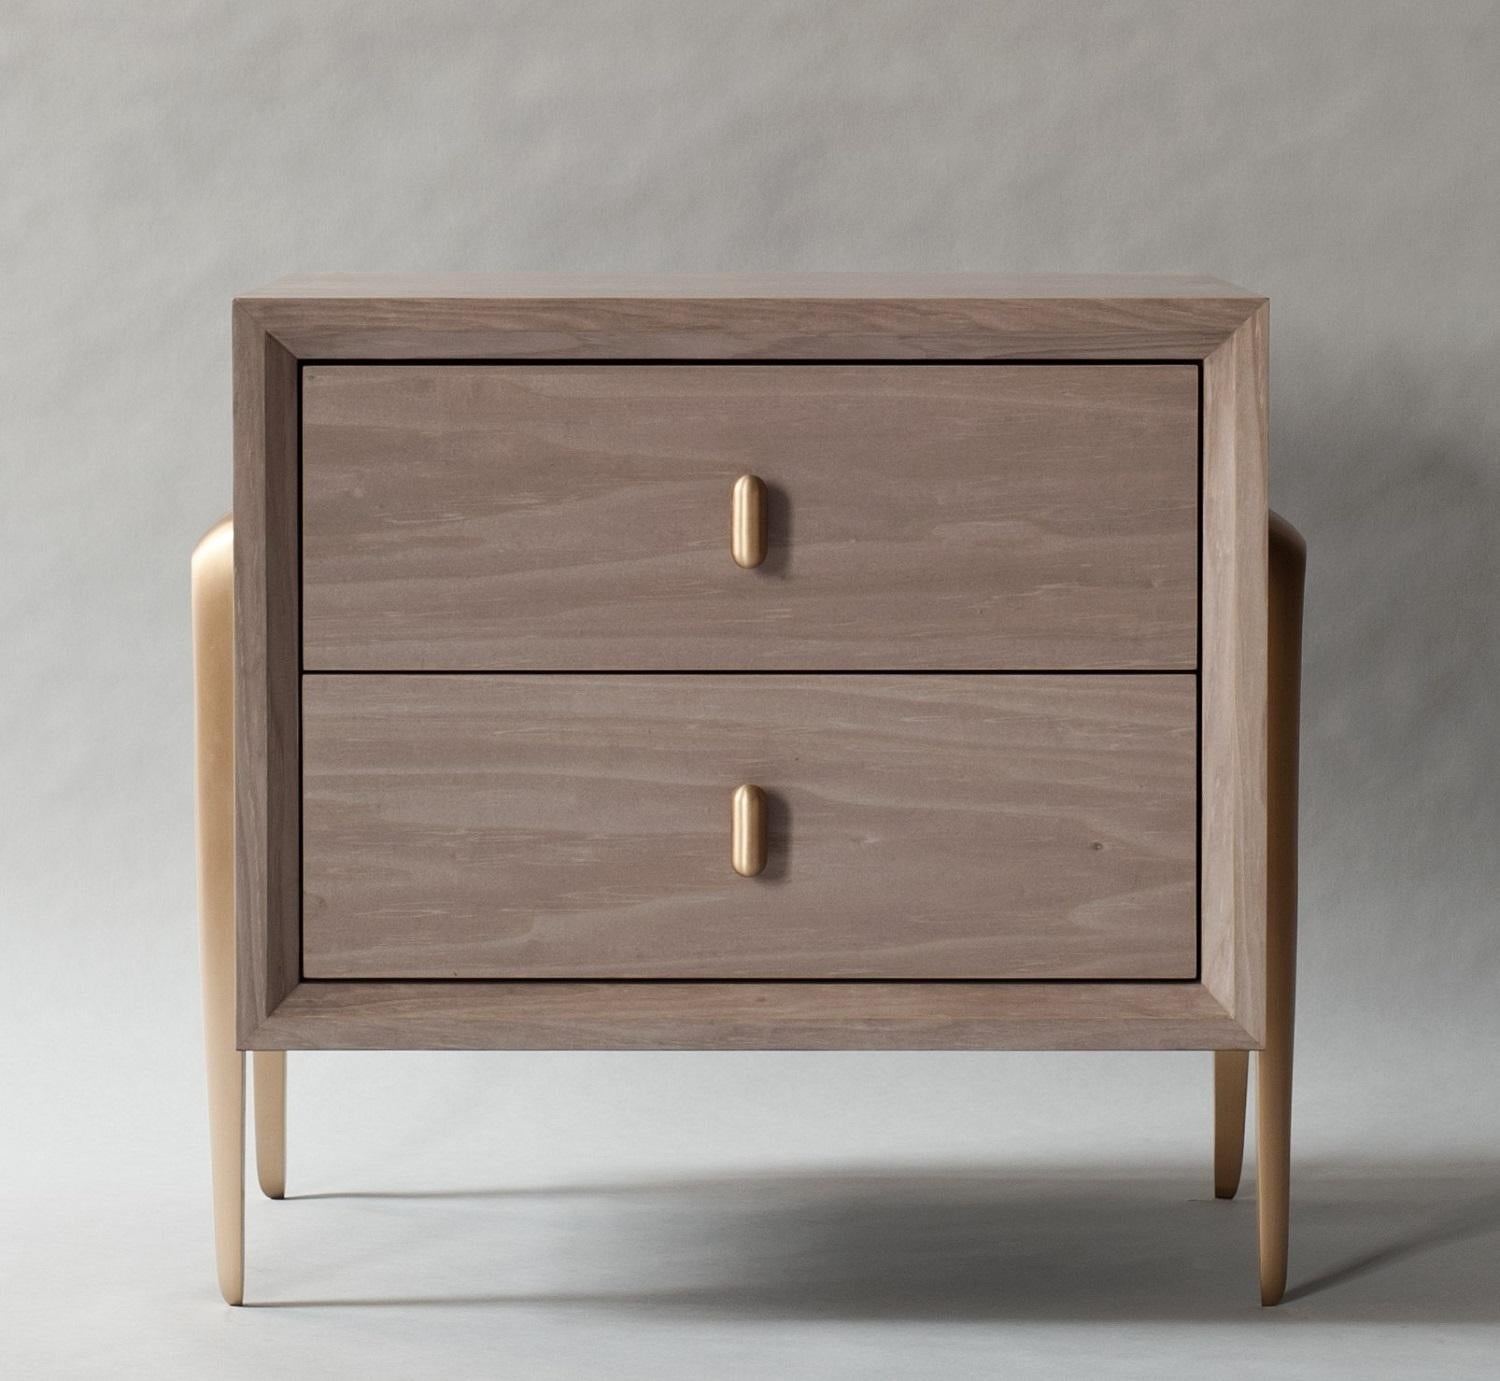 Serge Bedside Table By Demuro Das In Matte Light Grey Tulip With Bronze Legs